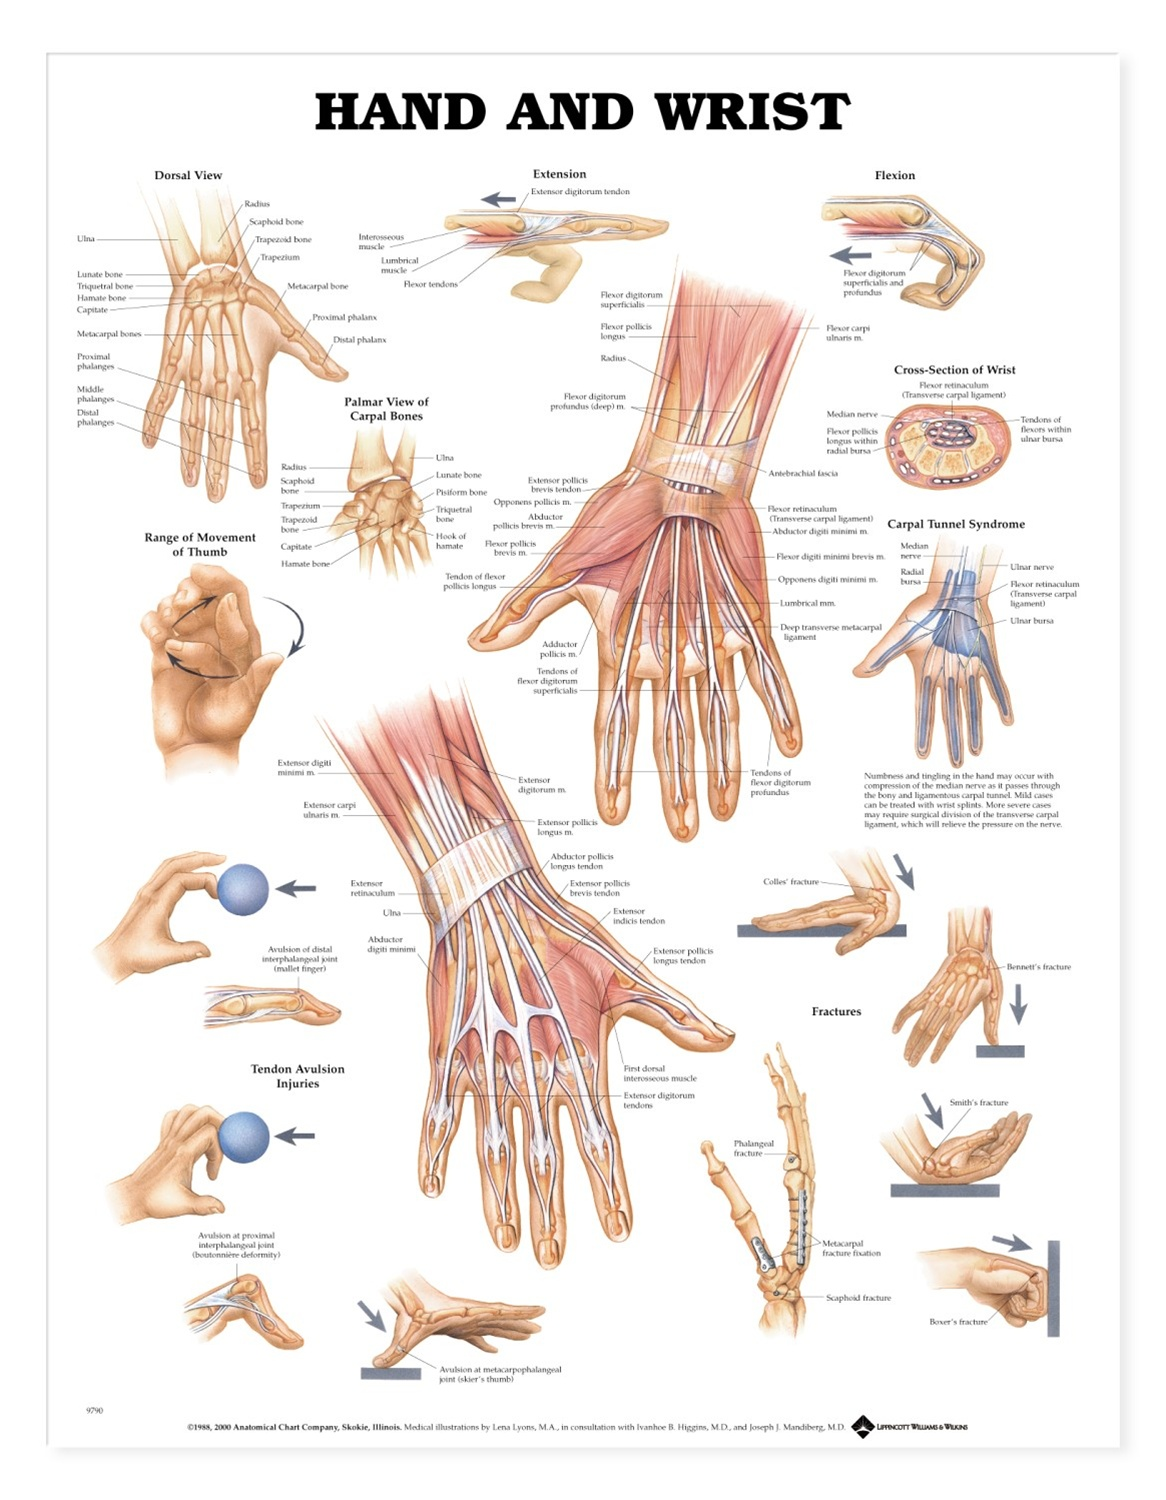 palmar hand muscle anatomy diagram of trachea tissue and wrist anatomical chart models